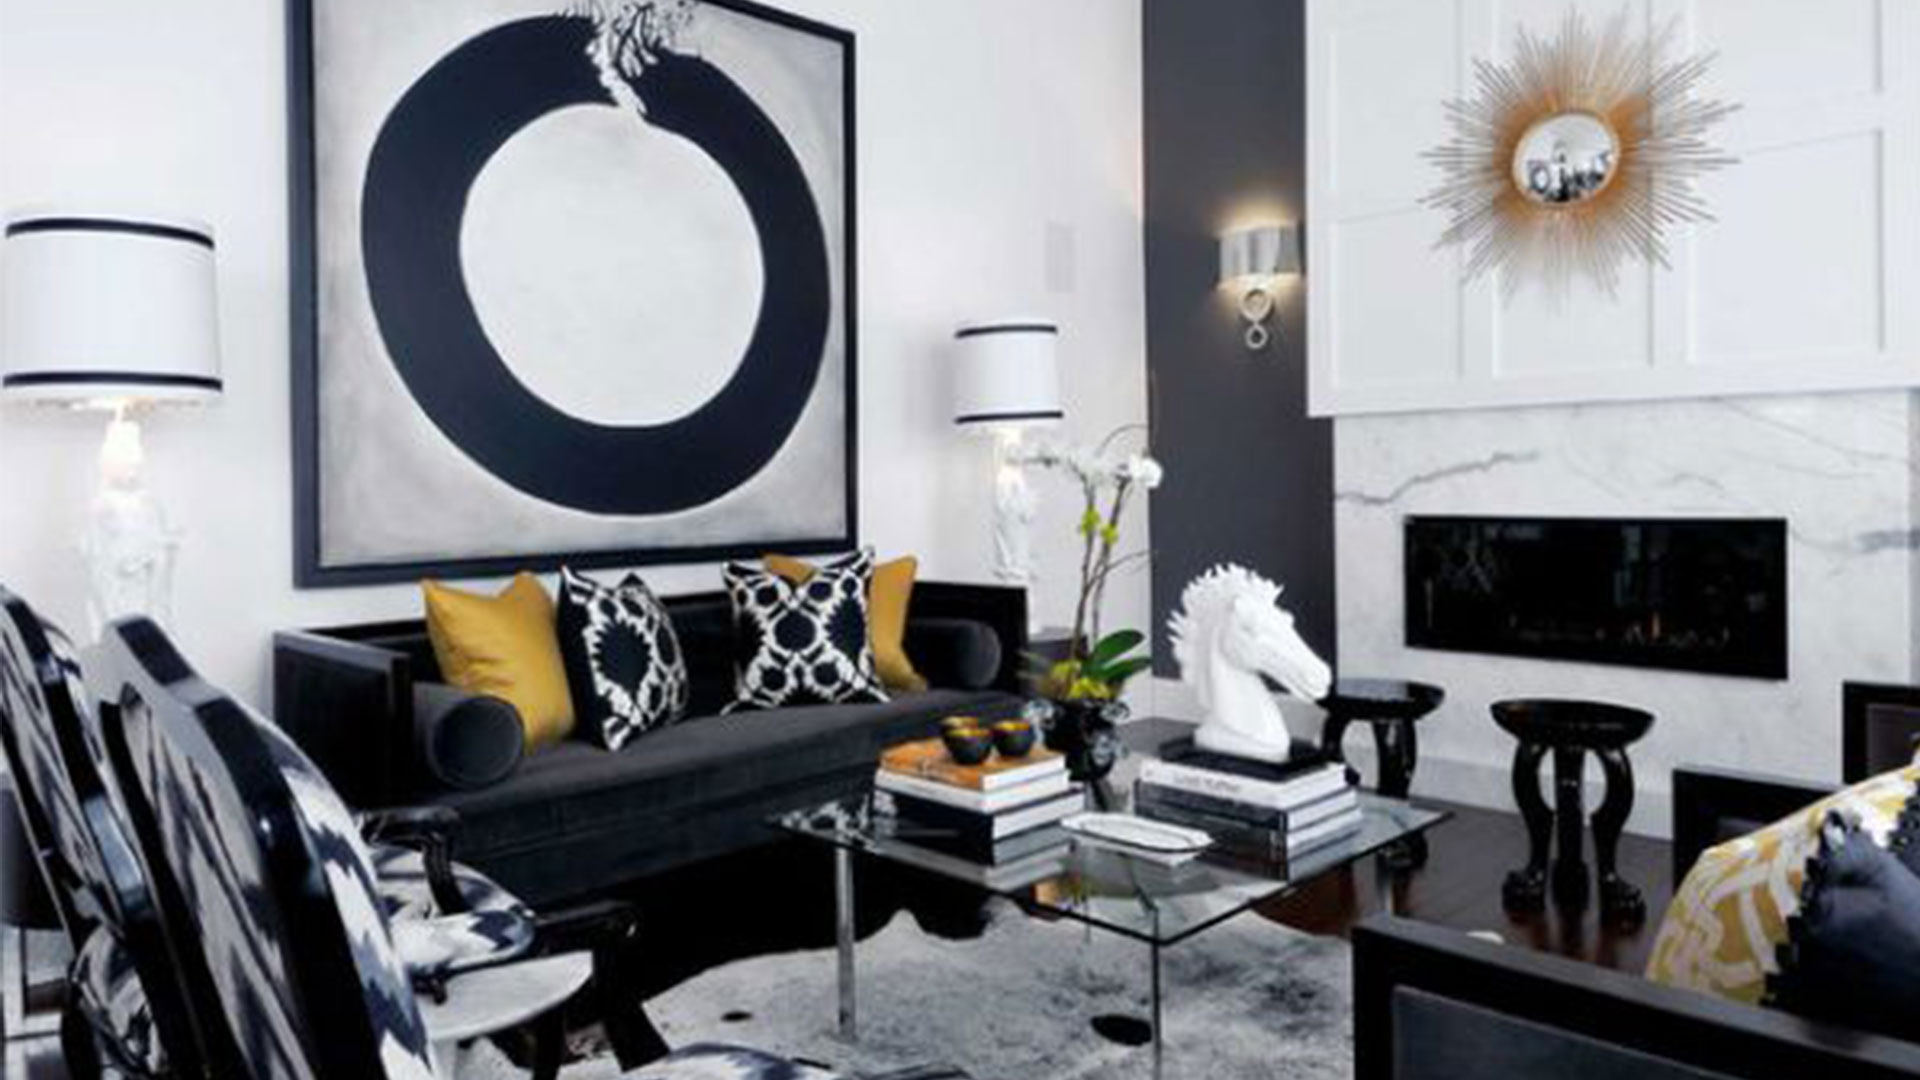 Black Furniture: Interior Design Photo Ideas. Nice pop art design of the apartment with some cool figurines